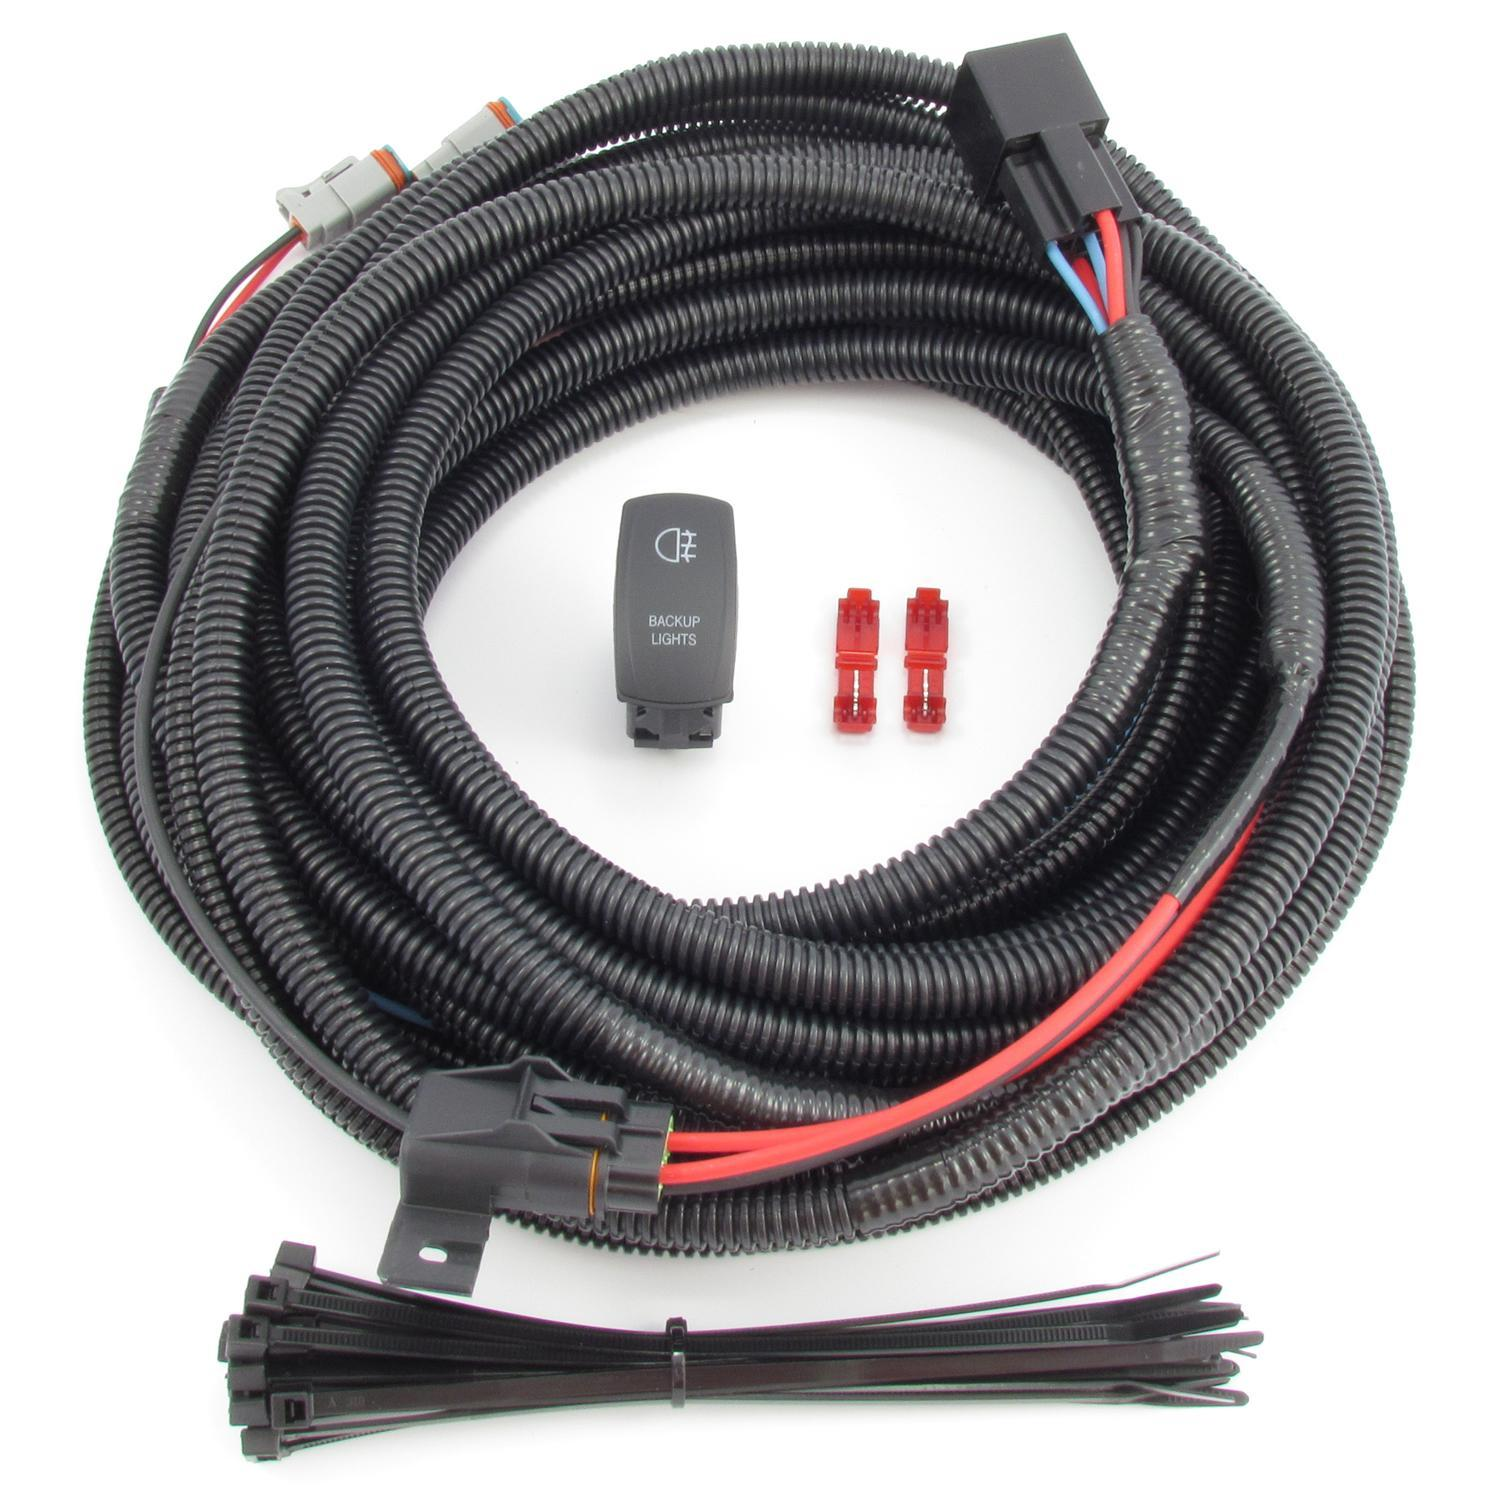 hight resolution of backup auxiliary lighting wiring switch kit fits all truck suv